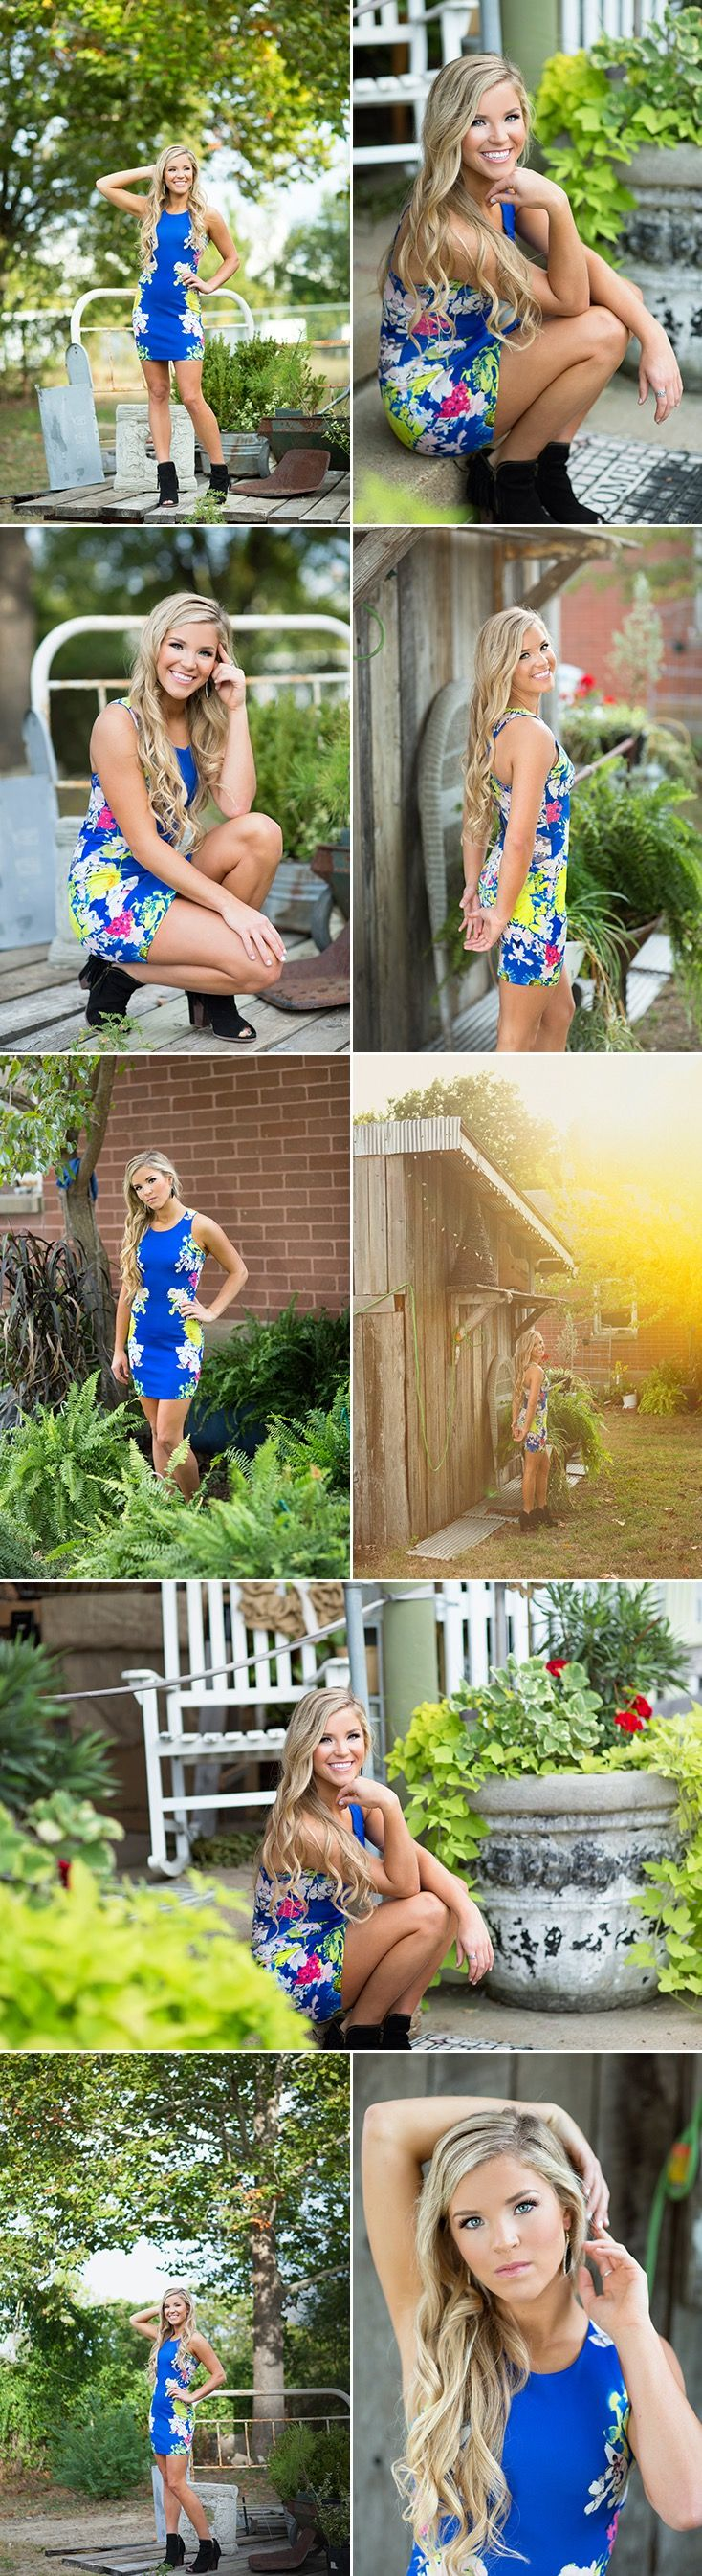 Bailey   d-Squared Designs St. Louis   MO Senior Photography